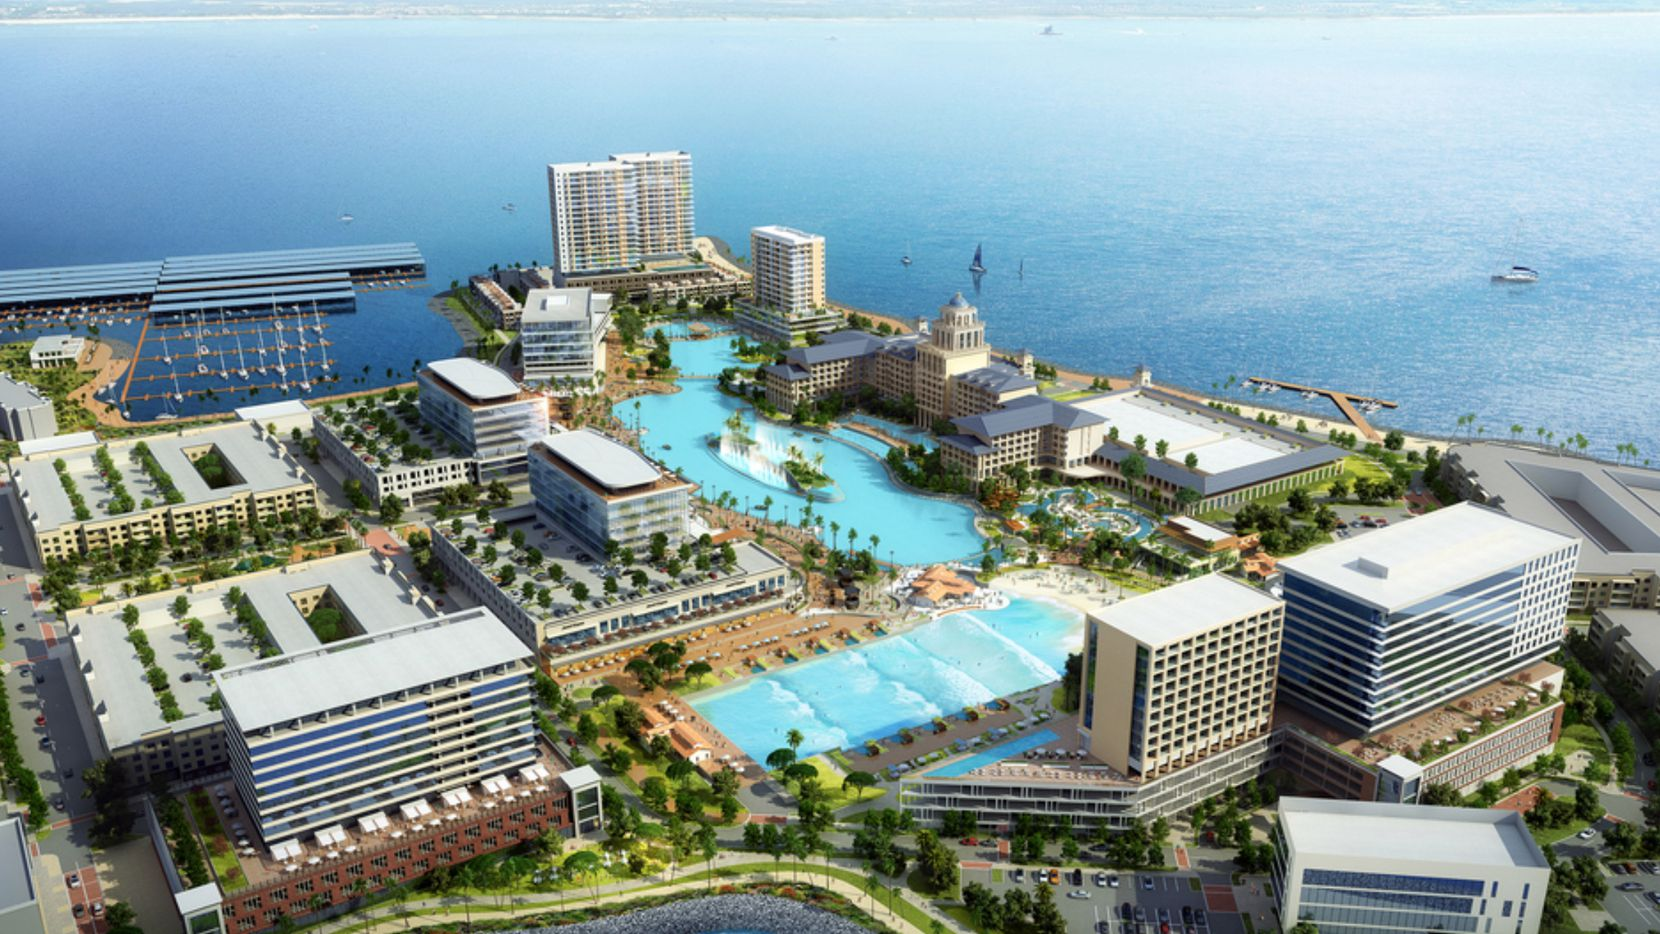 The lakeside section of Bayside has been renamed Sapphire Bay and is scheduled to open the first phase in 2023.